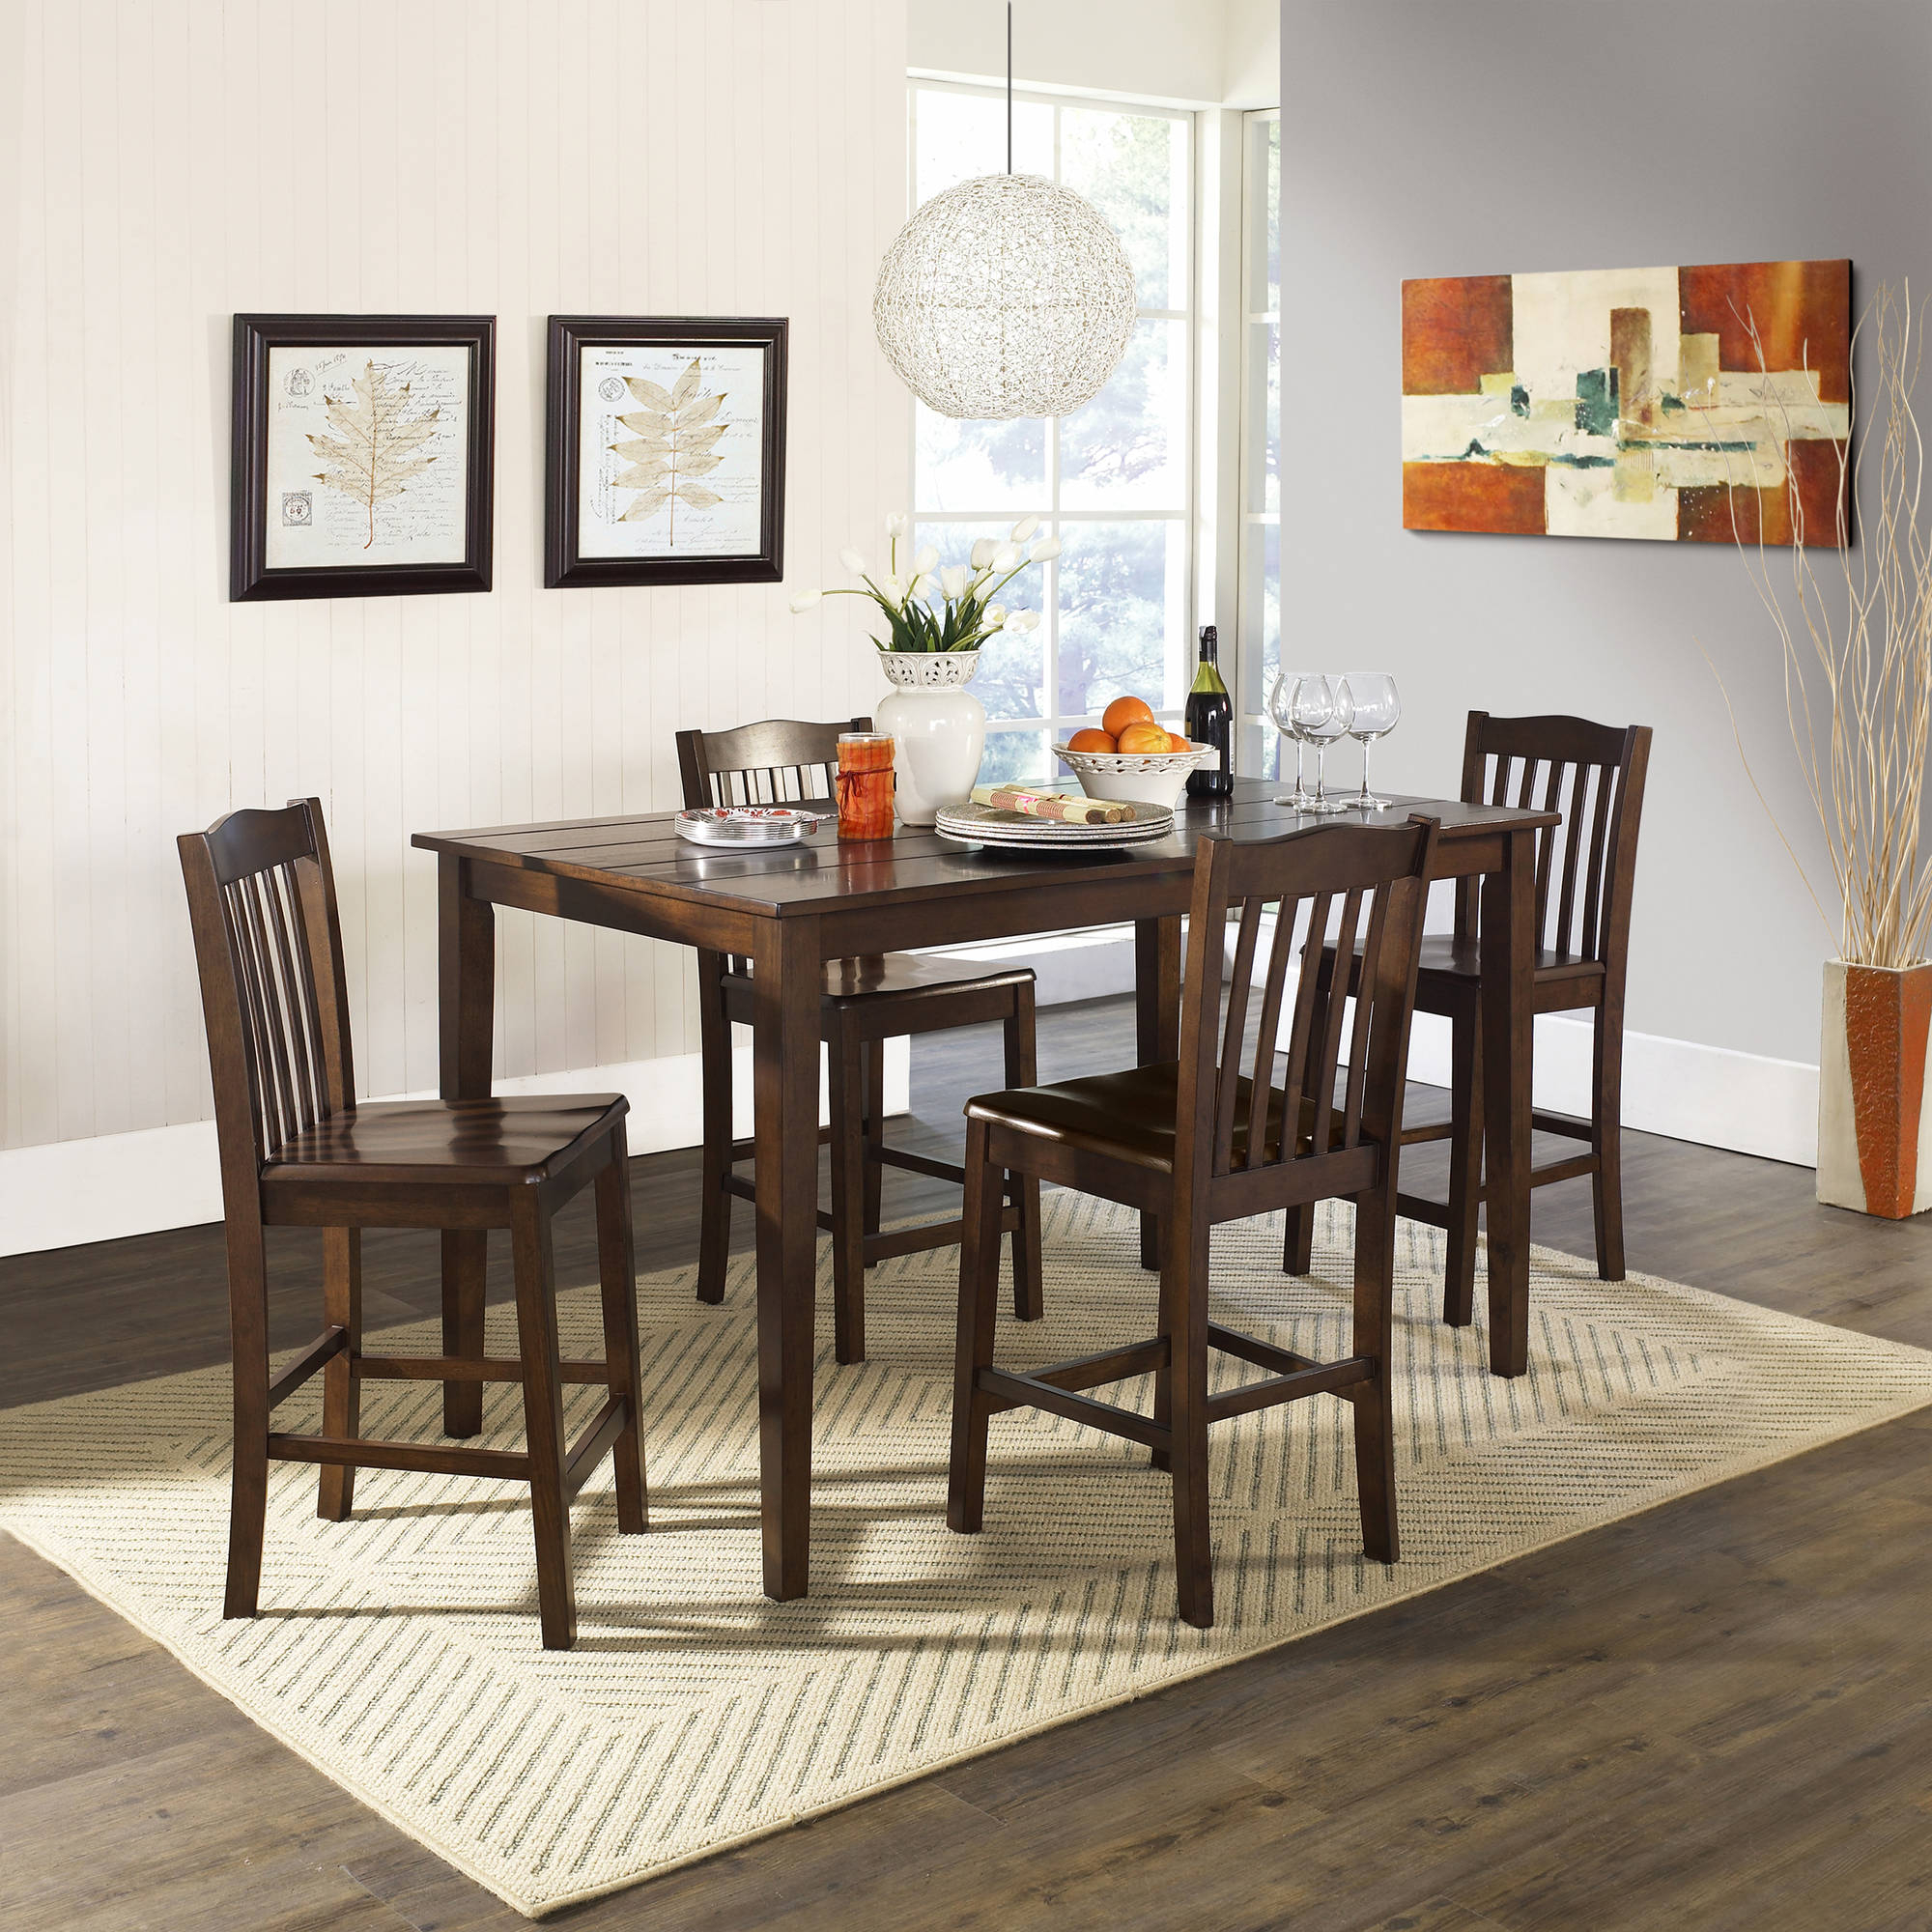 5 Piece Baxter Dining Set With Storage Ottoman, Multiple Colors With Most Popular Anette 3 Piece Counter Height Dining Sets (View 13 of 20)